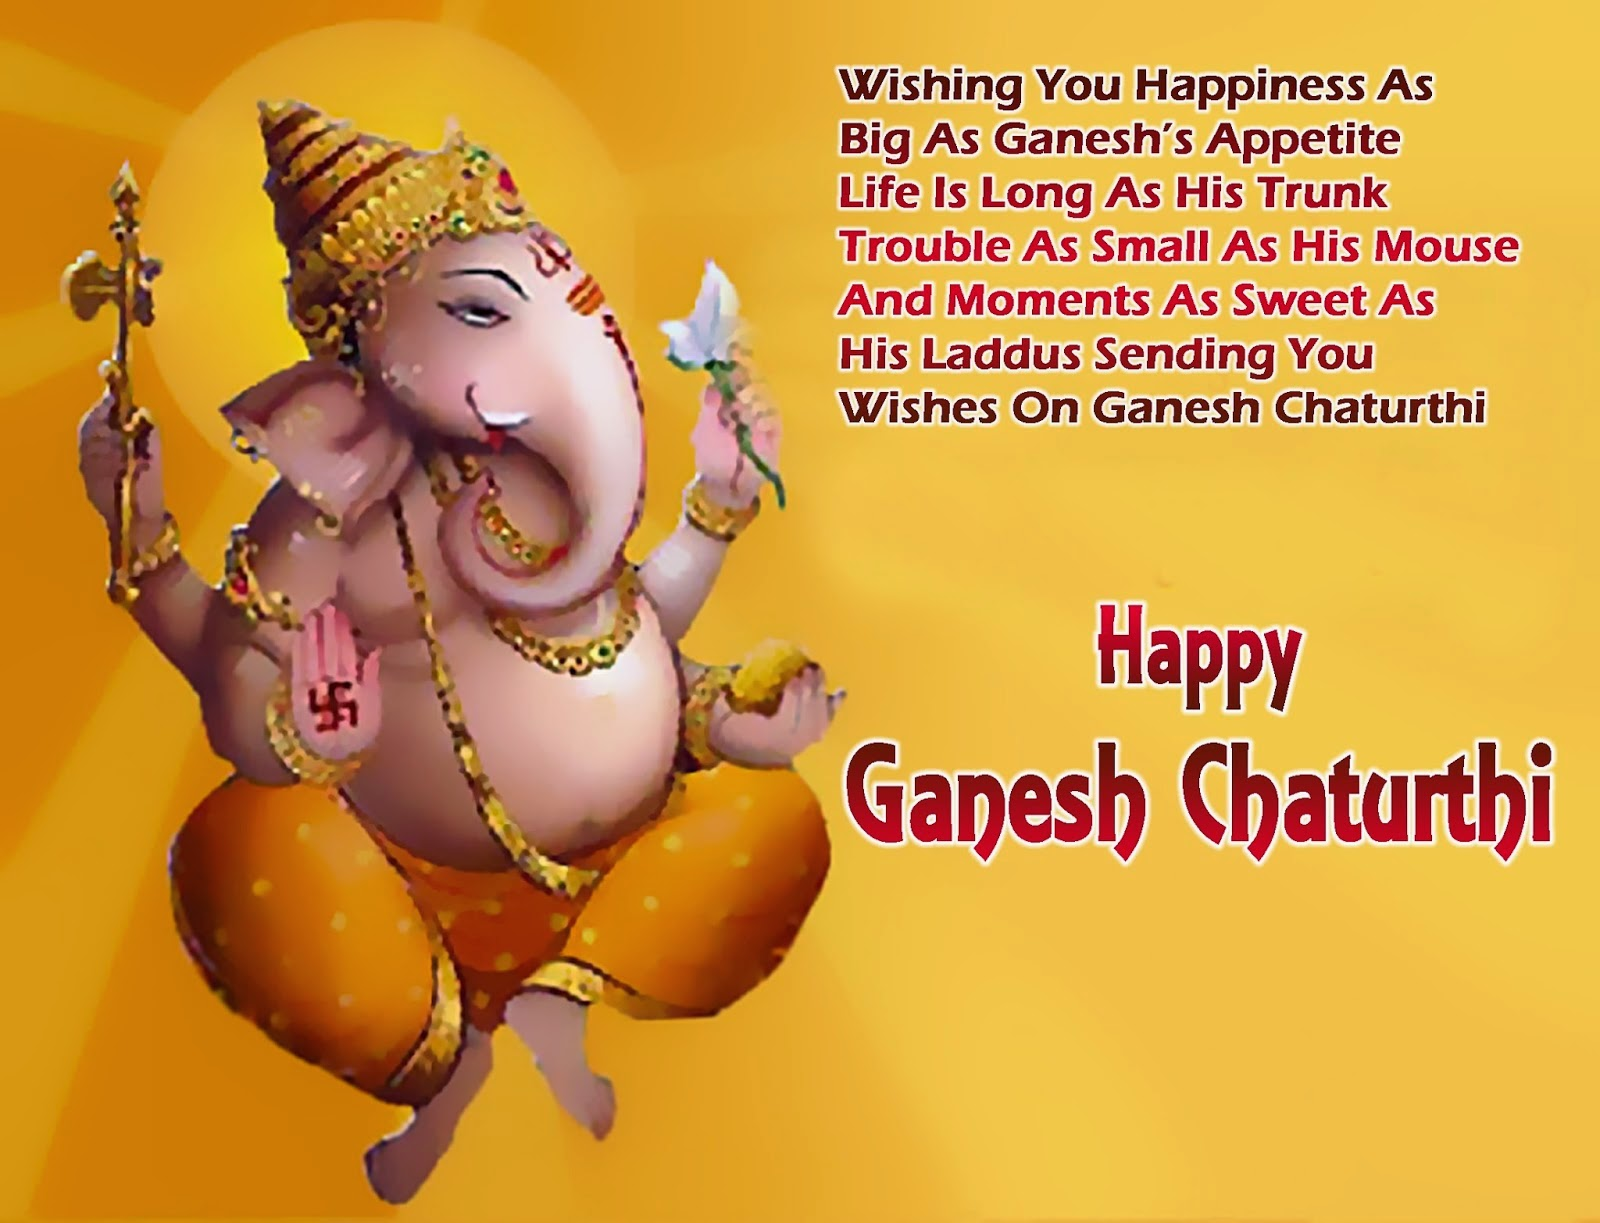 ganesh chaturthi greetings - photo #2